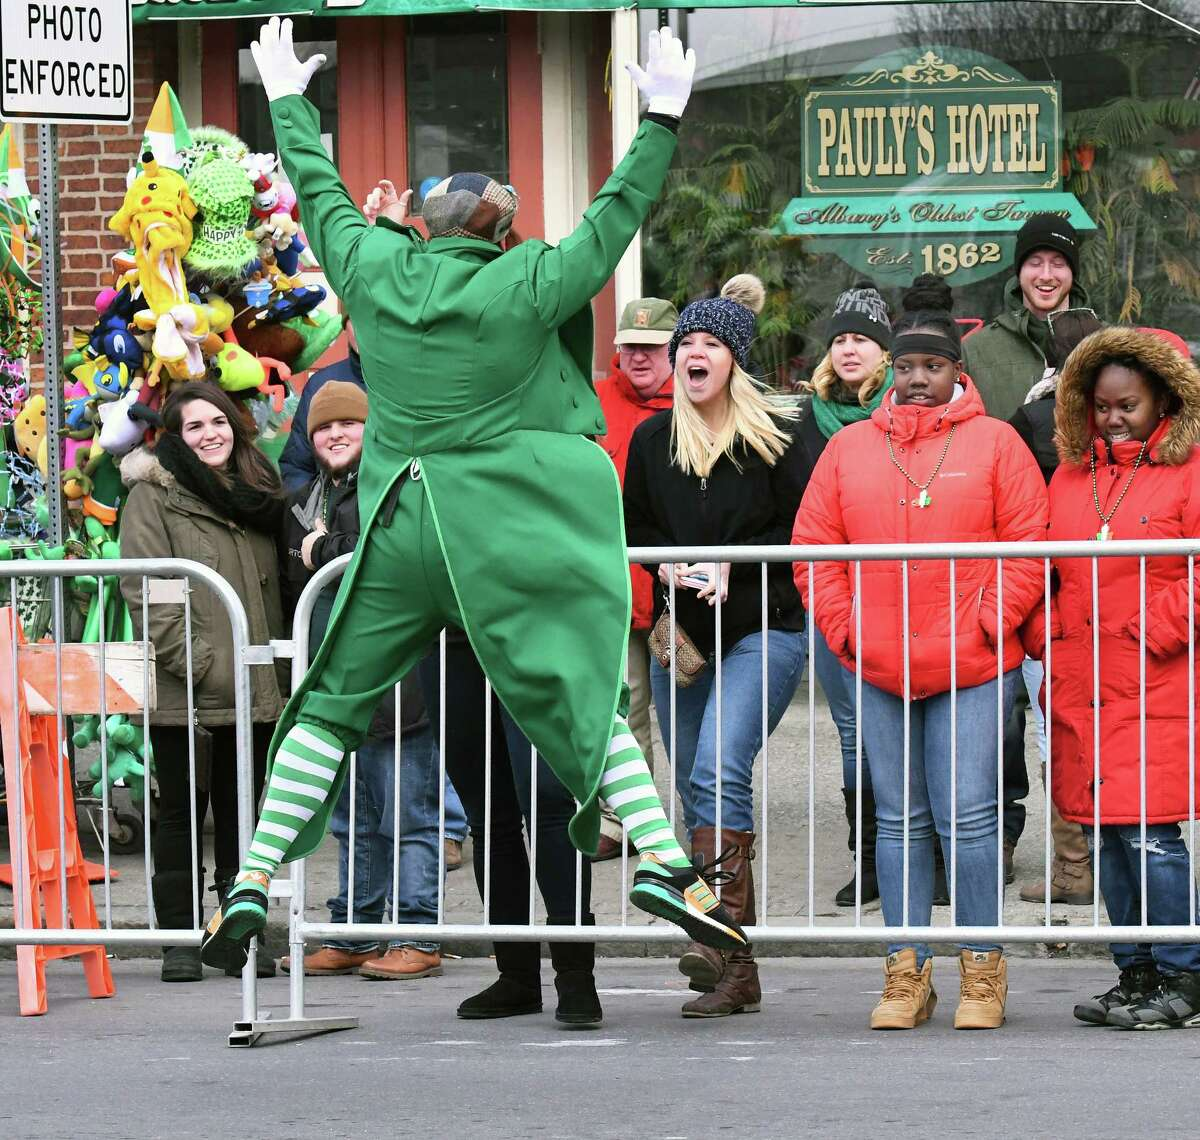 The Limerick's Gary Robusto wows the crowds with his acrobatic leaps during the 67th annual Albany St. Patrick's Day parade Saturday March 11, 2017 in Albany, NY. (John Carl D'Annibale / Times Union)